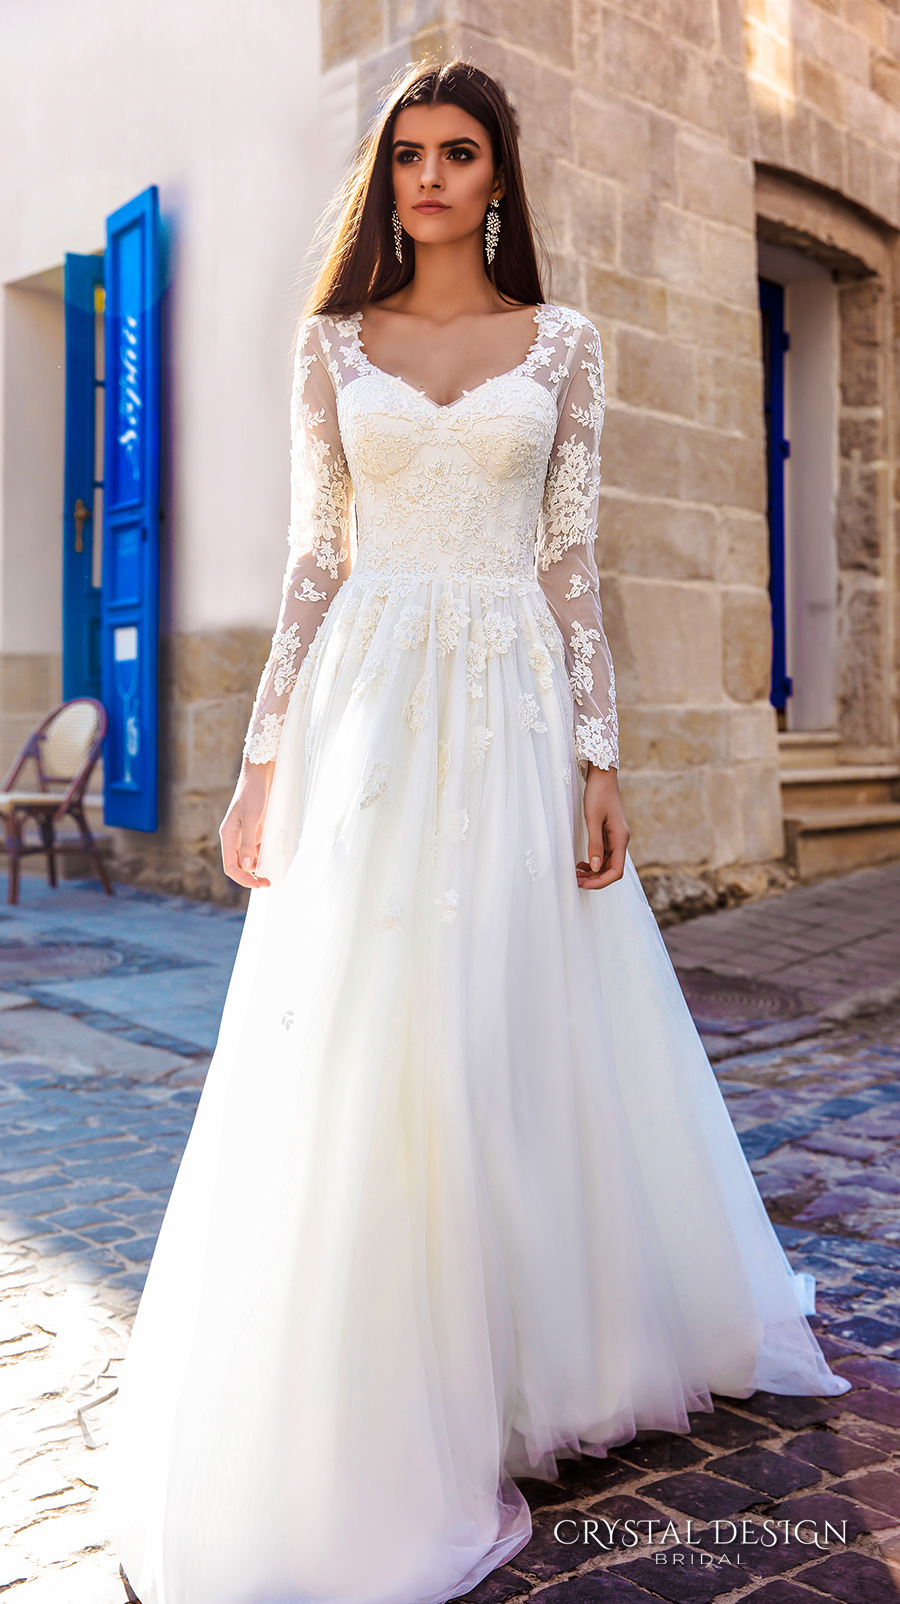 Cly Wedding Dresses With Sleeves